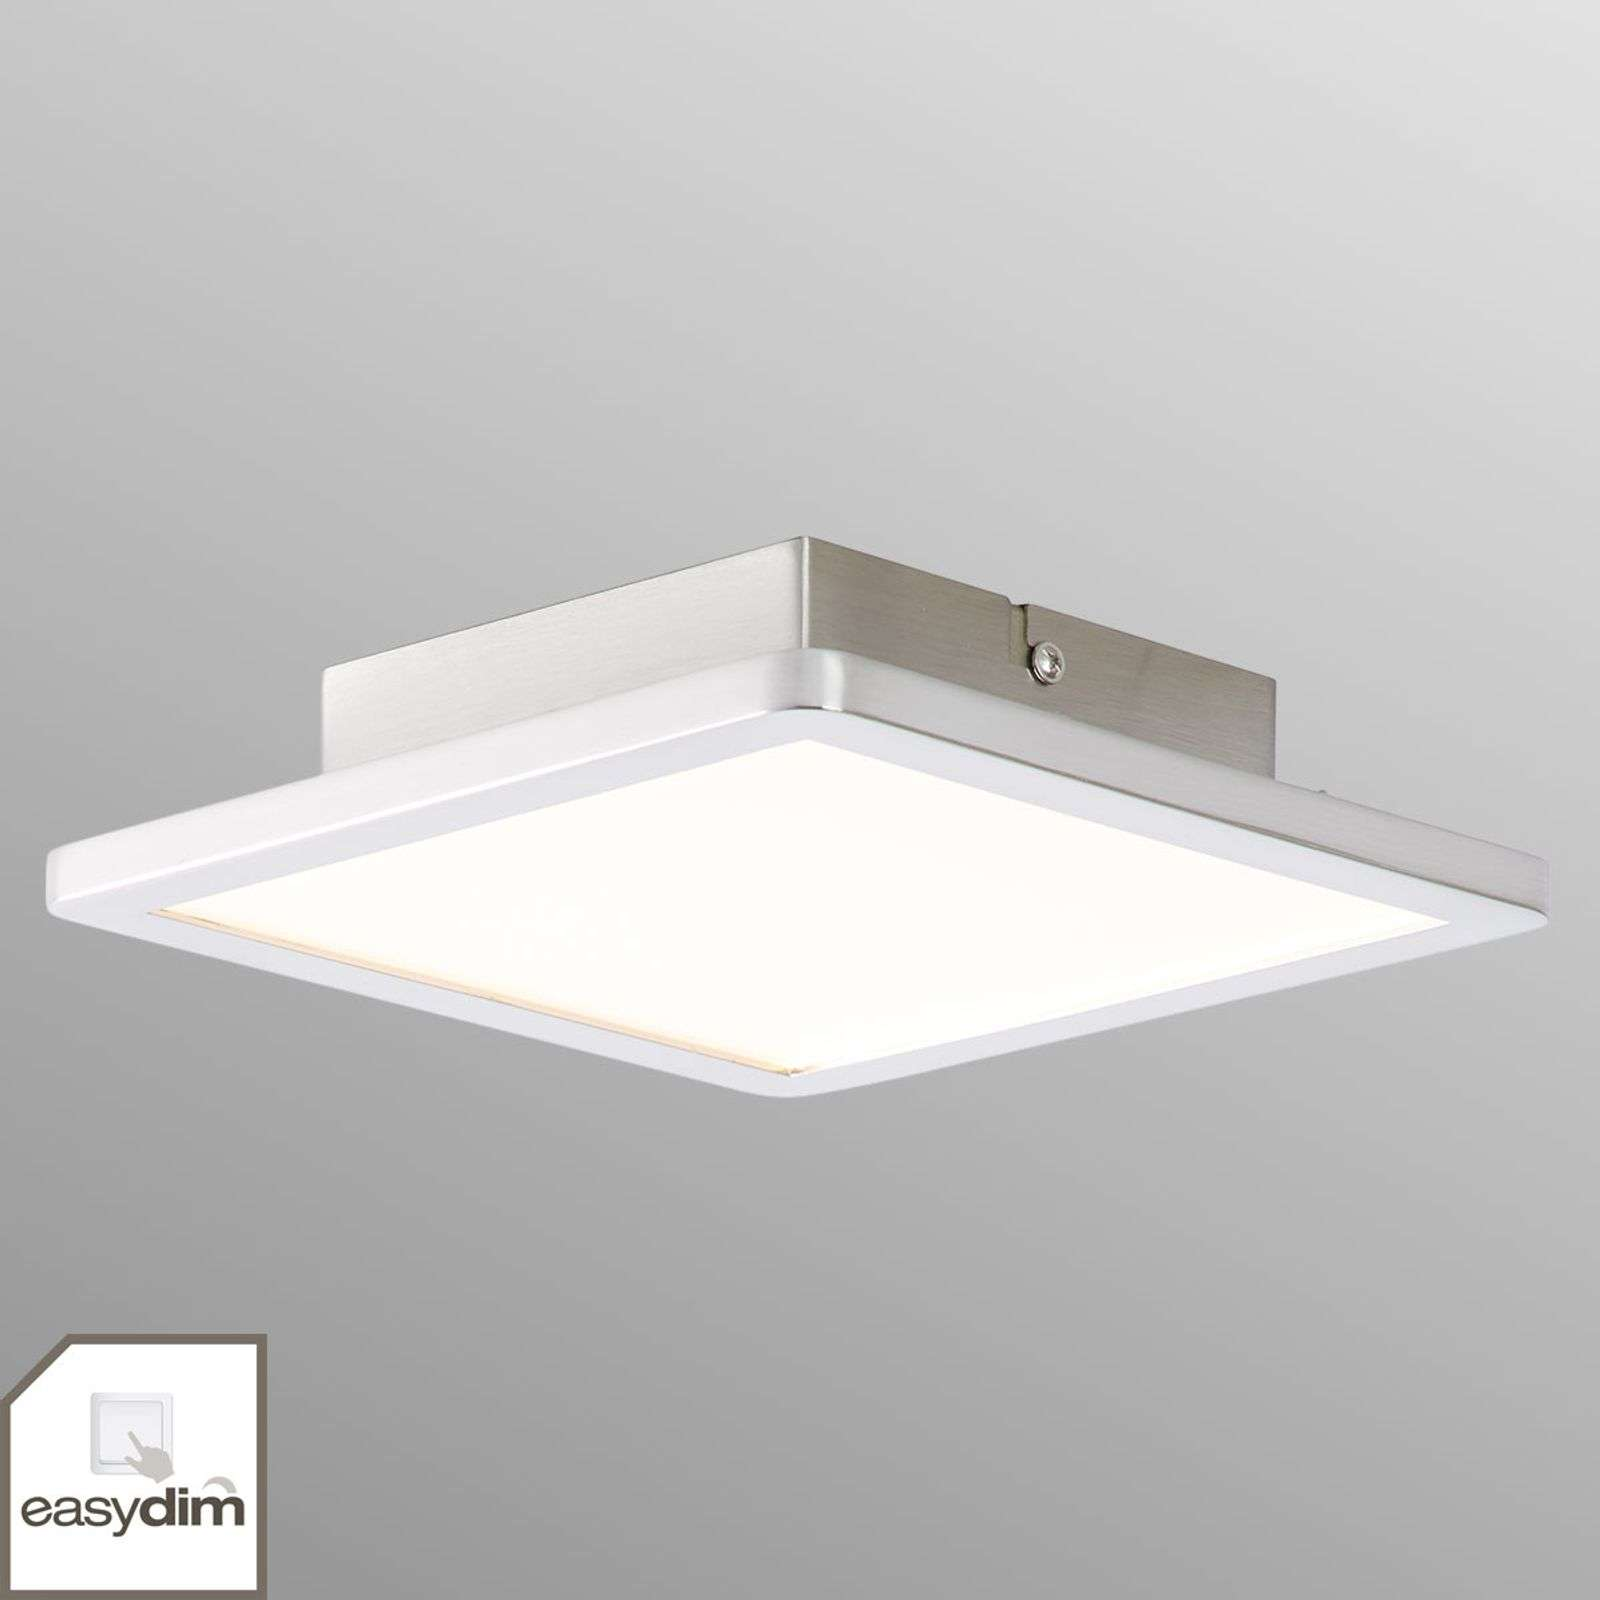 Scope - lampada LED a soffitto con easydim